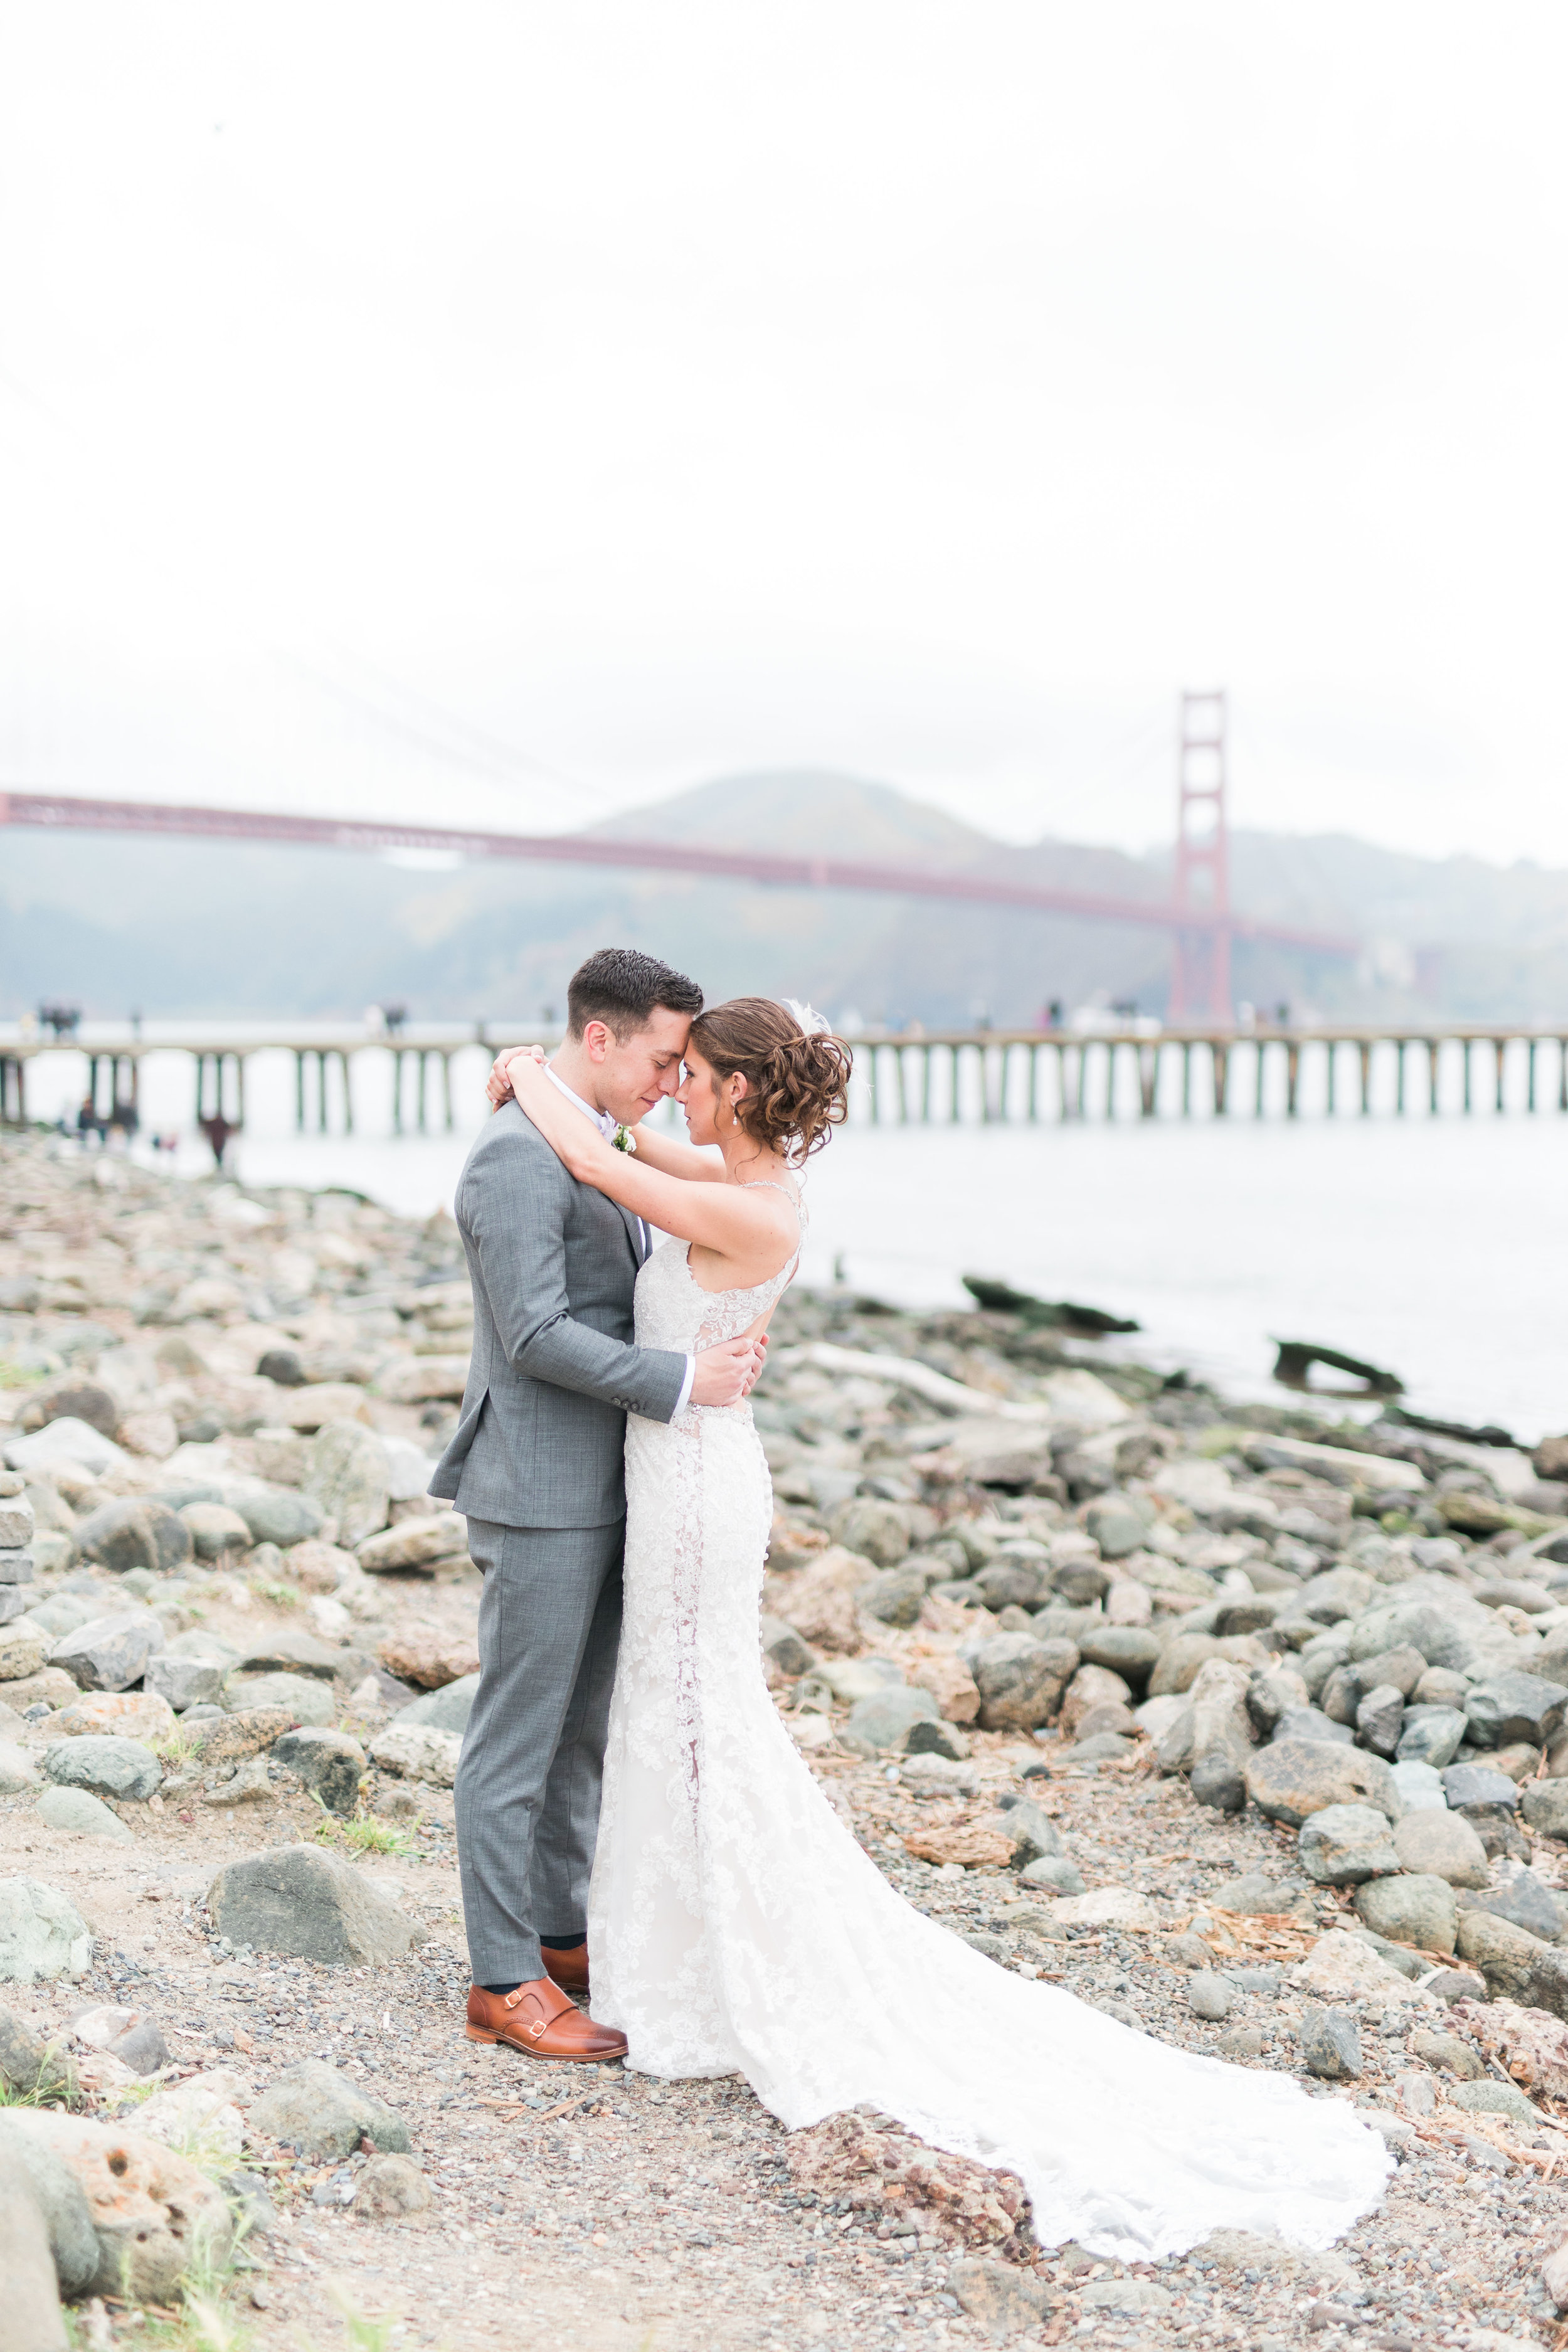 Best Engagement Photo Locations in SF - Crissy Field Engagement Photos by JBJ Pictures (18).jpg